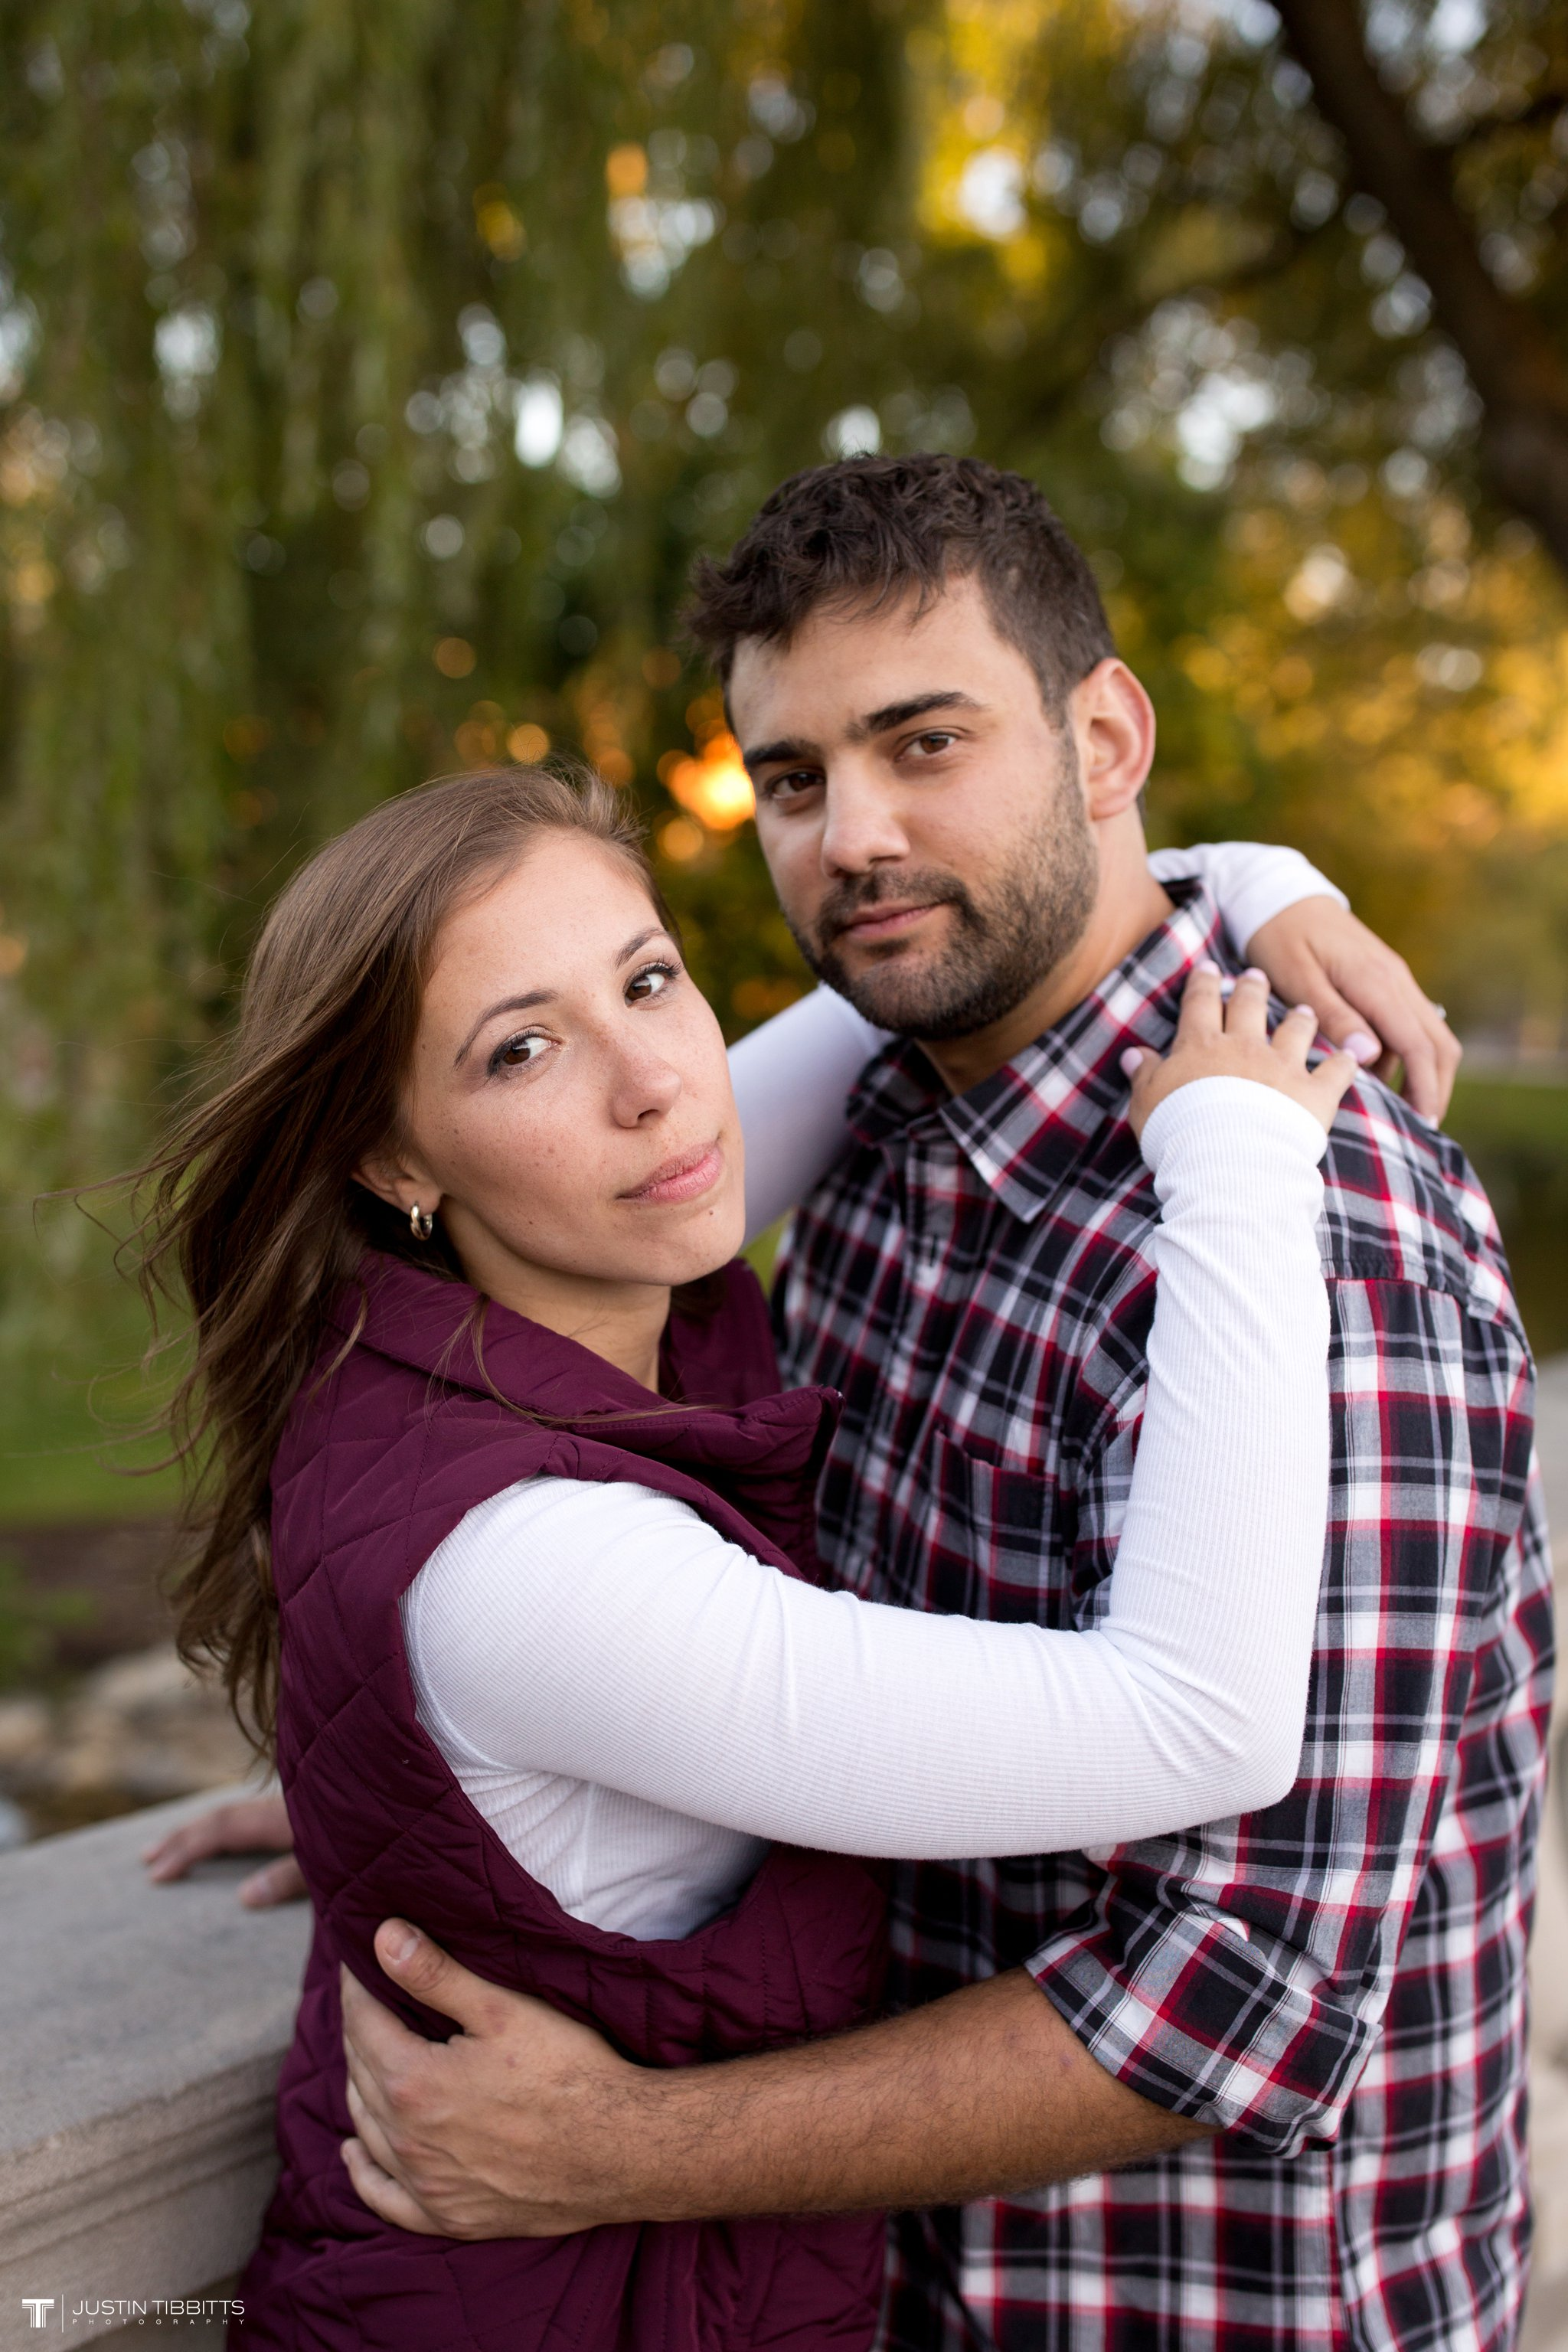 saratoga-springs-ny-engagement-shoot-with-nick-and-ciara_0031